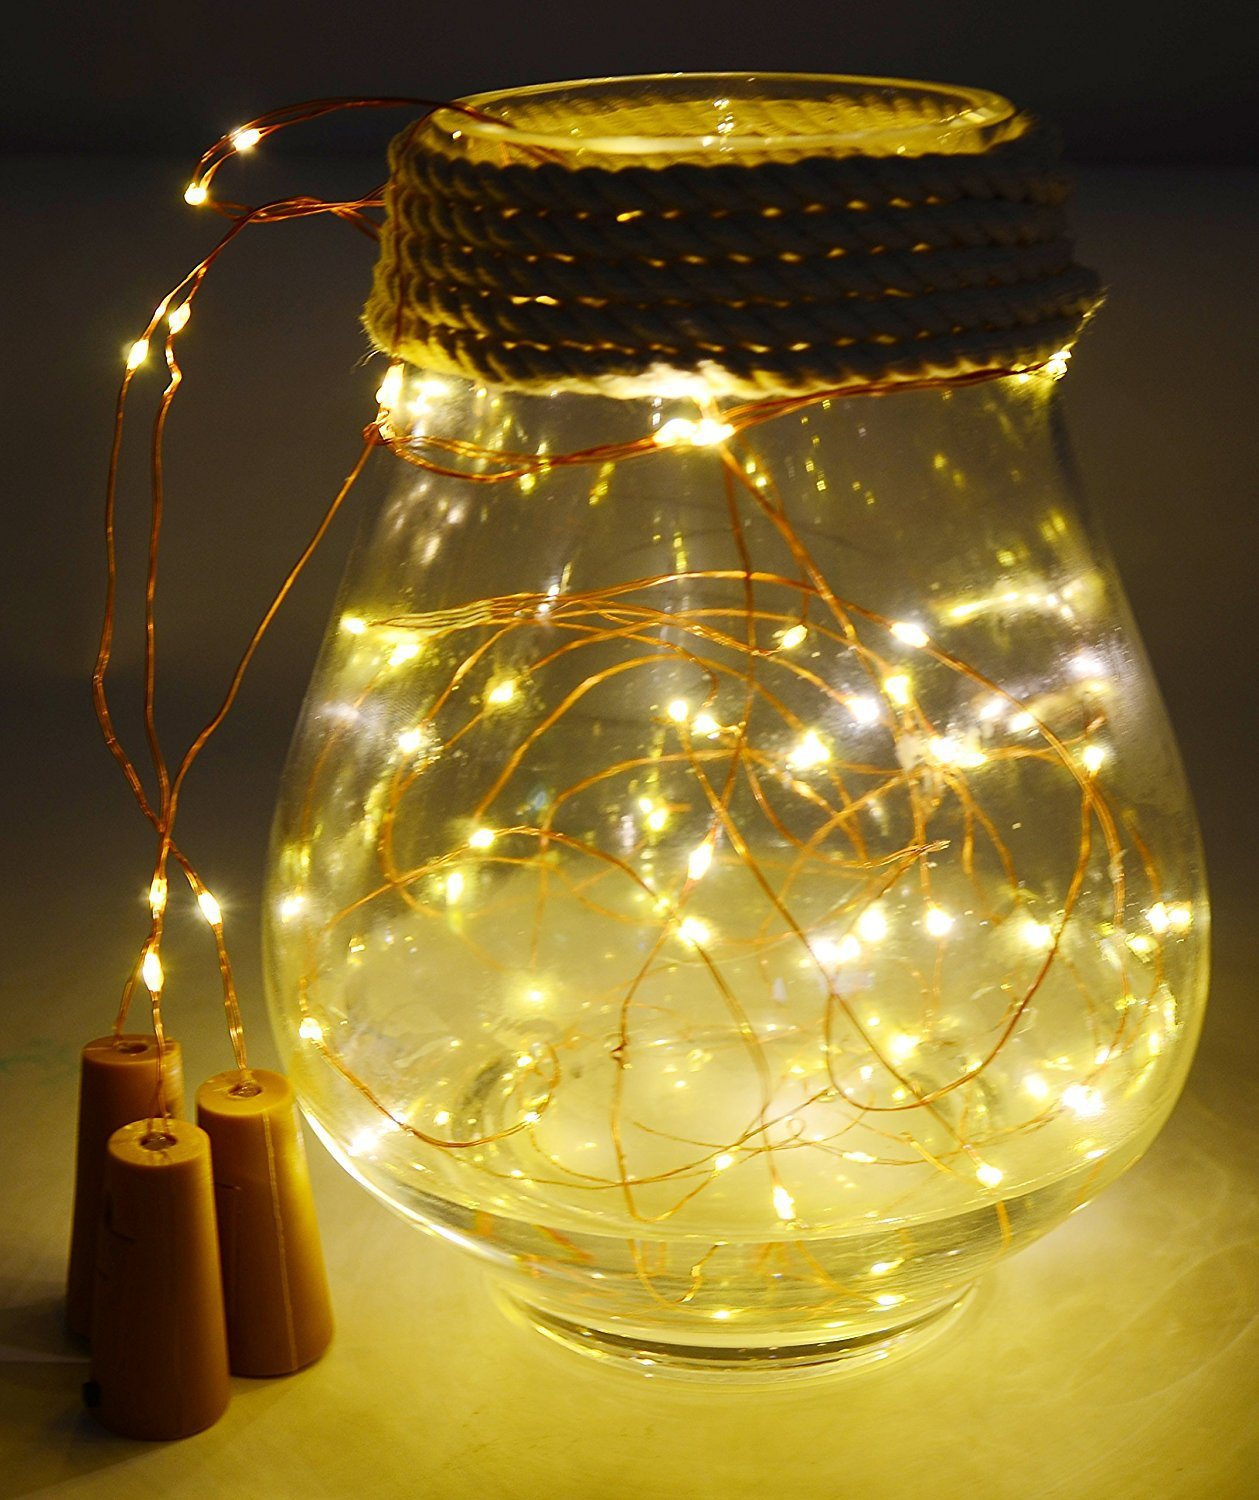 Micro Christmas Lights.Hot Item Micro Lr44 Ag13 Battery Operated Led String Lights Wine Bottle 10 Led Christmas Lights